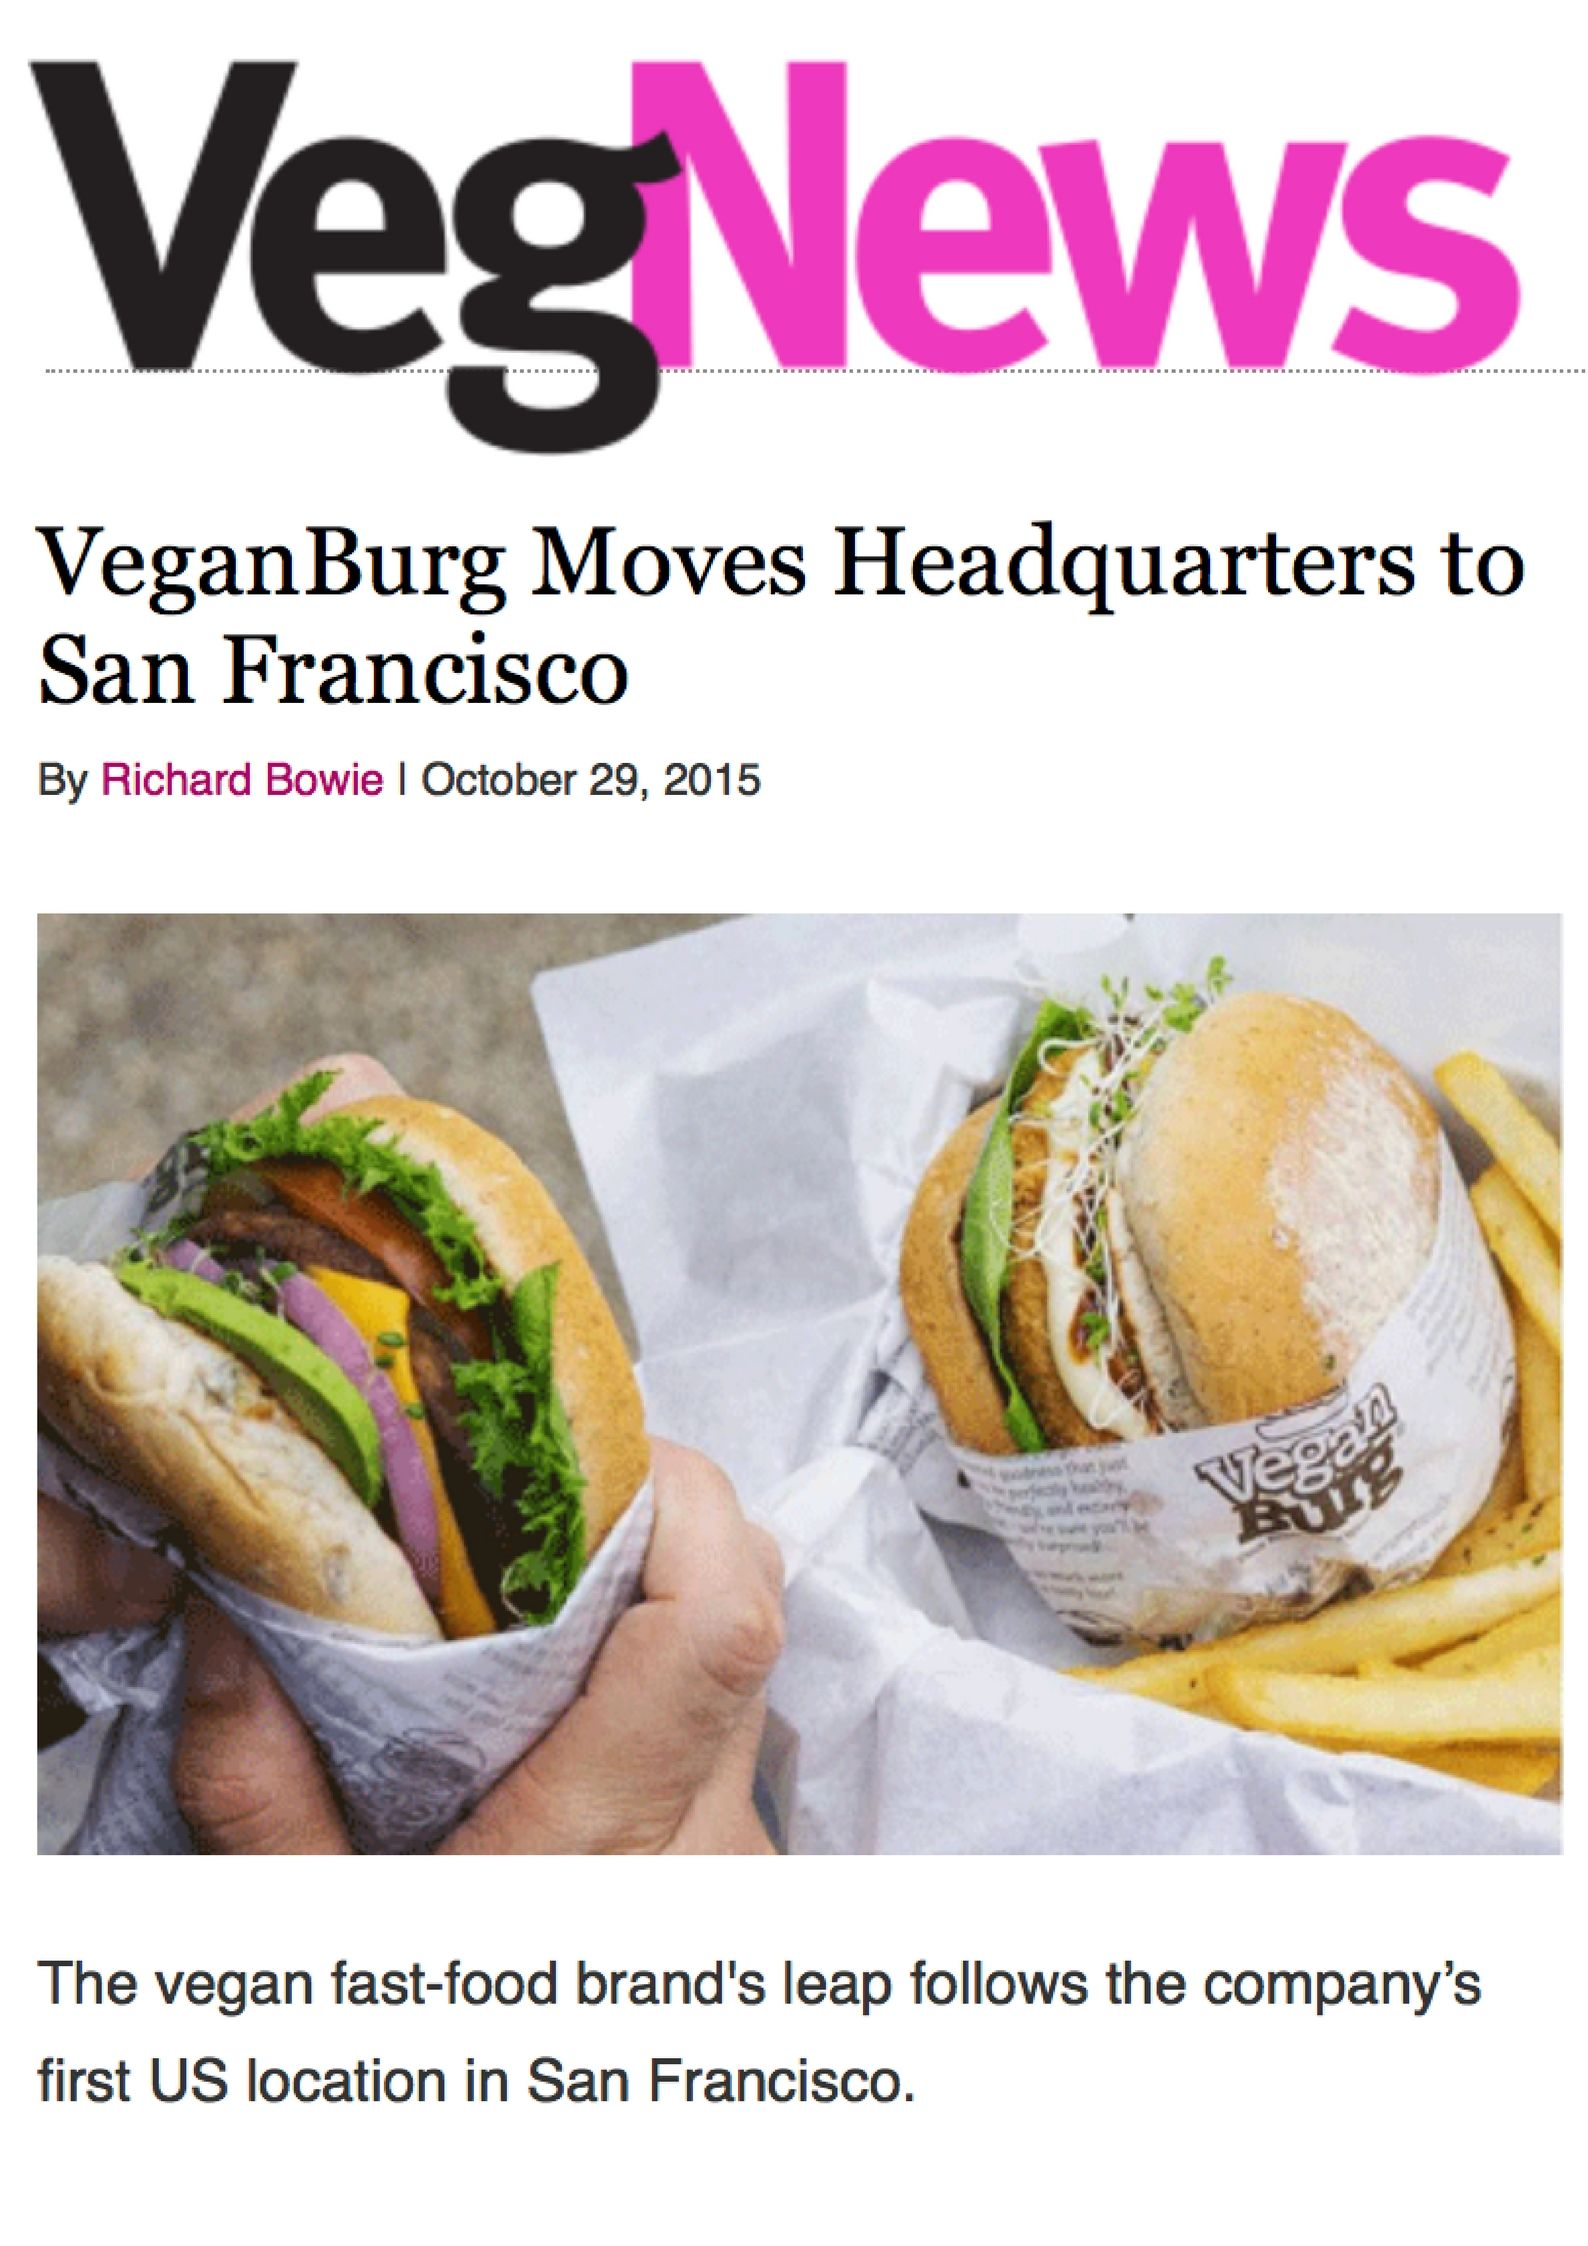 VegNews_ VeganBurg Moves Headquarters to San Francisco.jpg